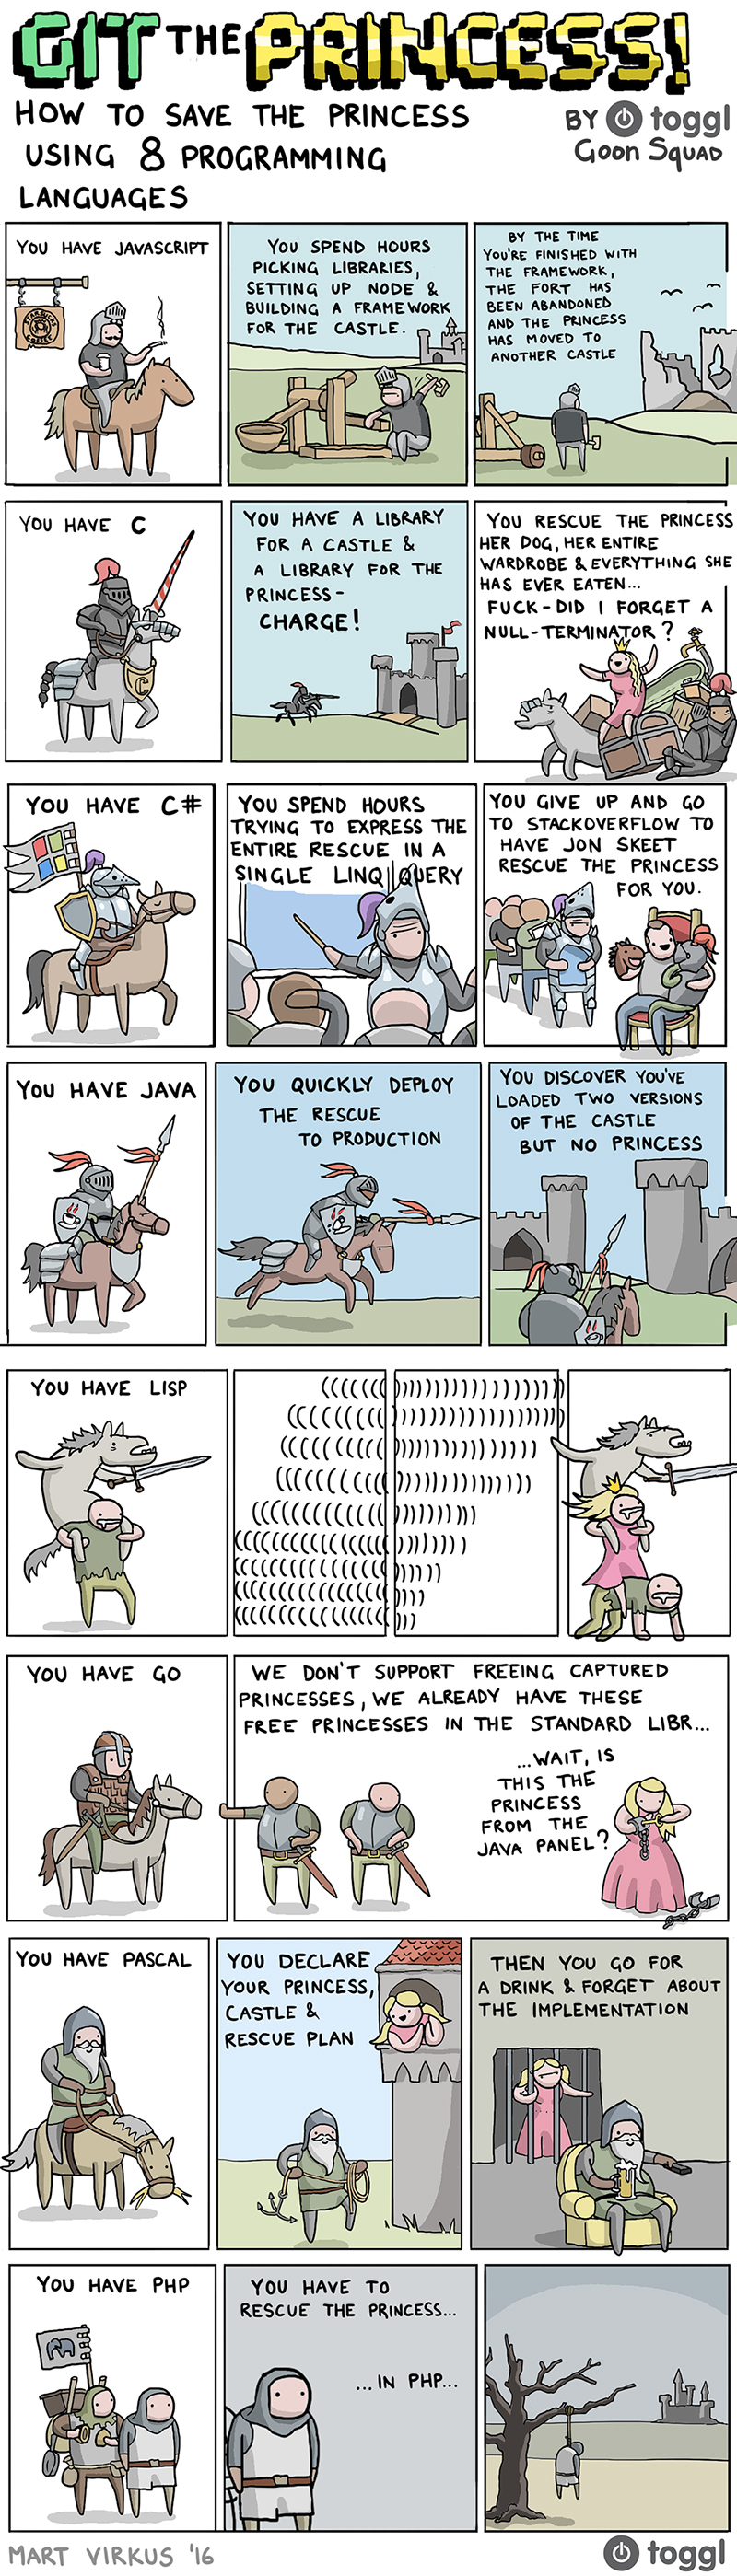 toggl-how-to-save-the-princess-in-8-programming-languages.jpg